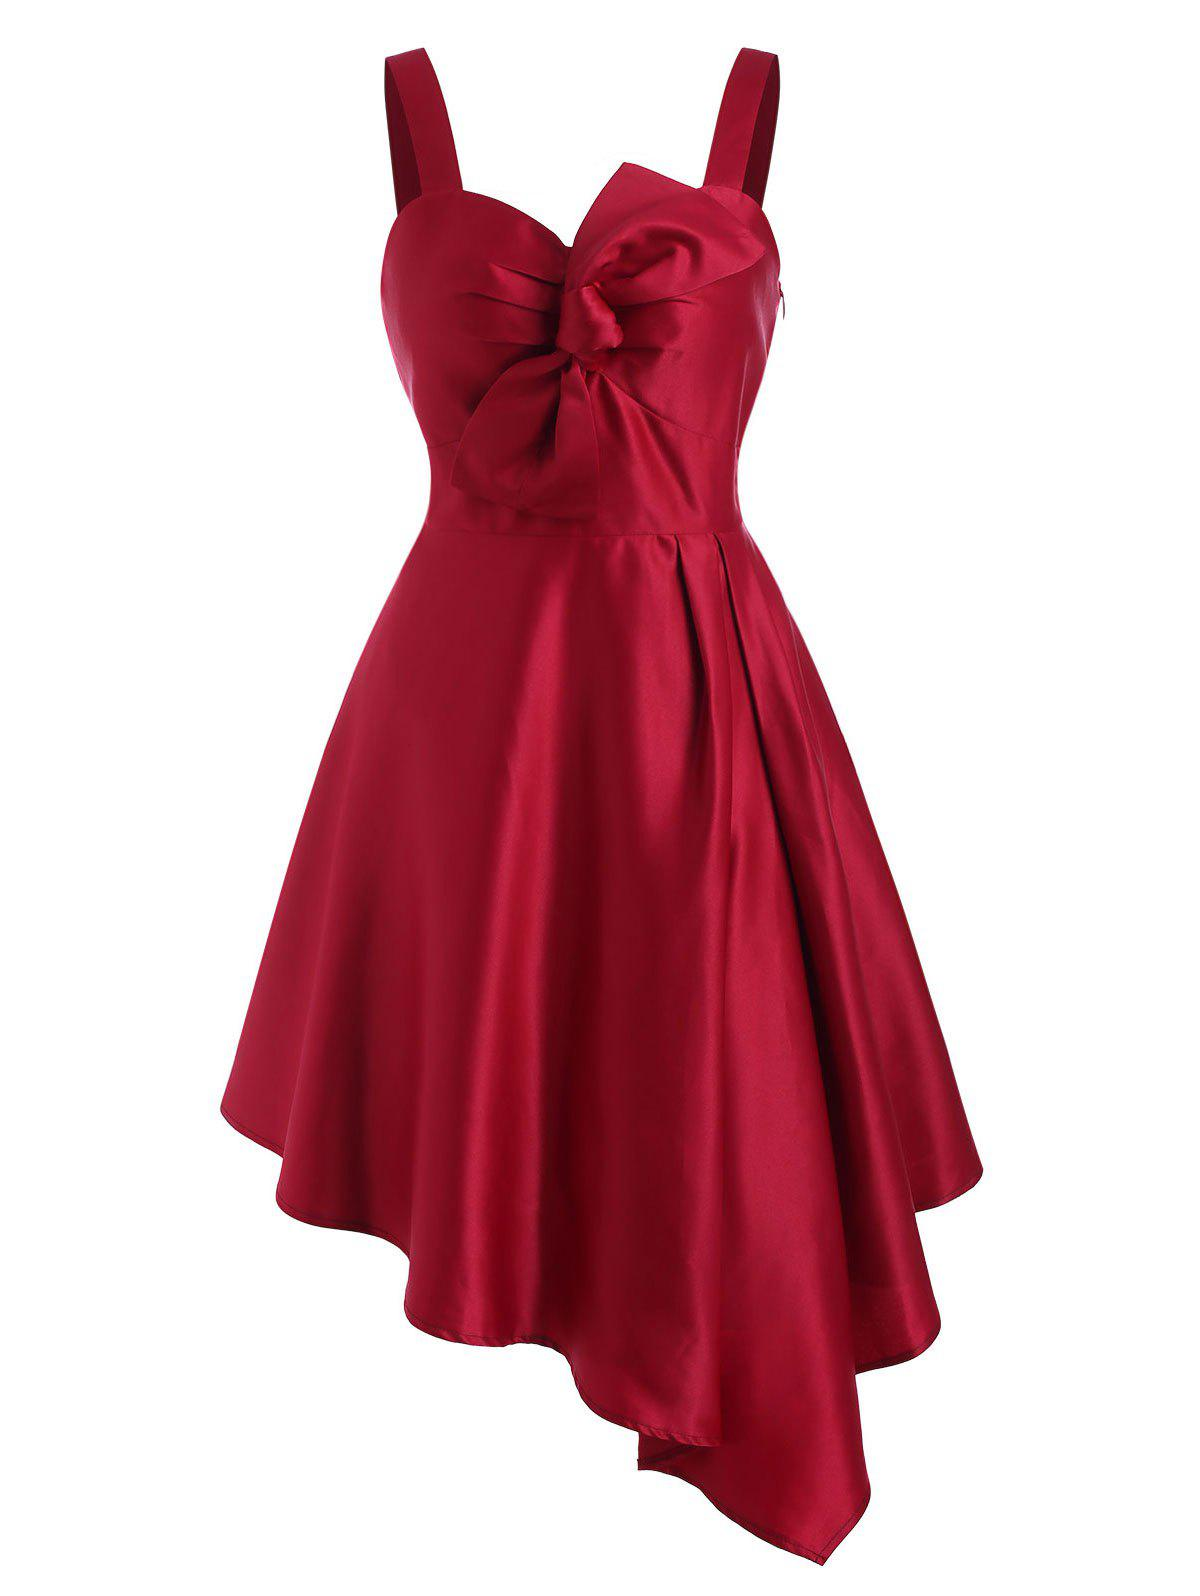 Bowknot Ruched Asymmetrical Dress - RED L